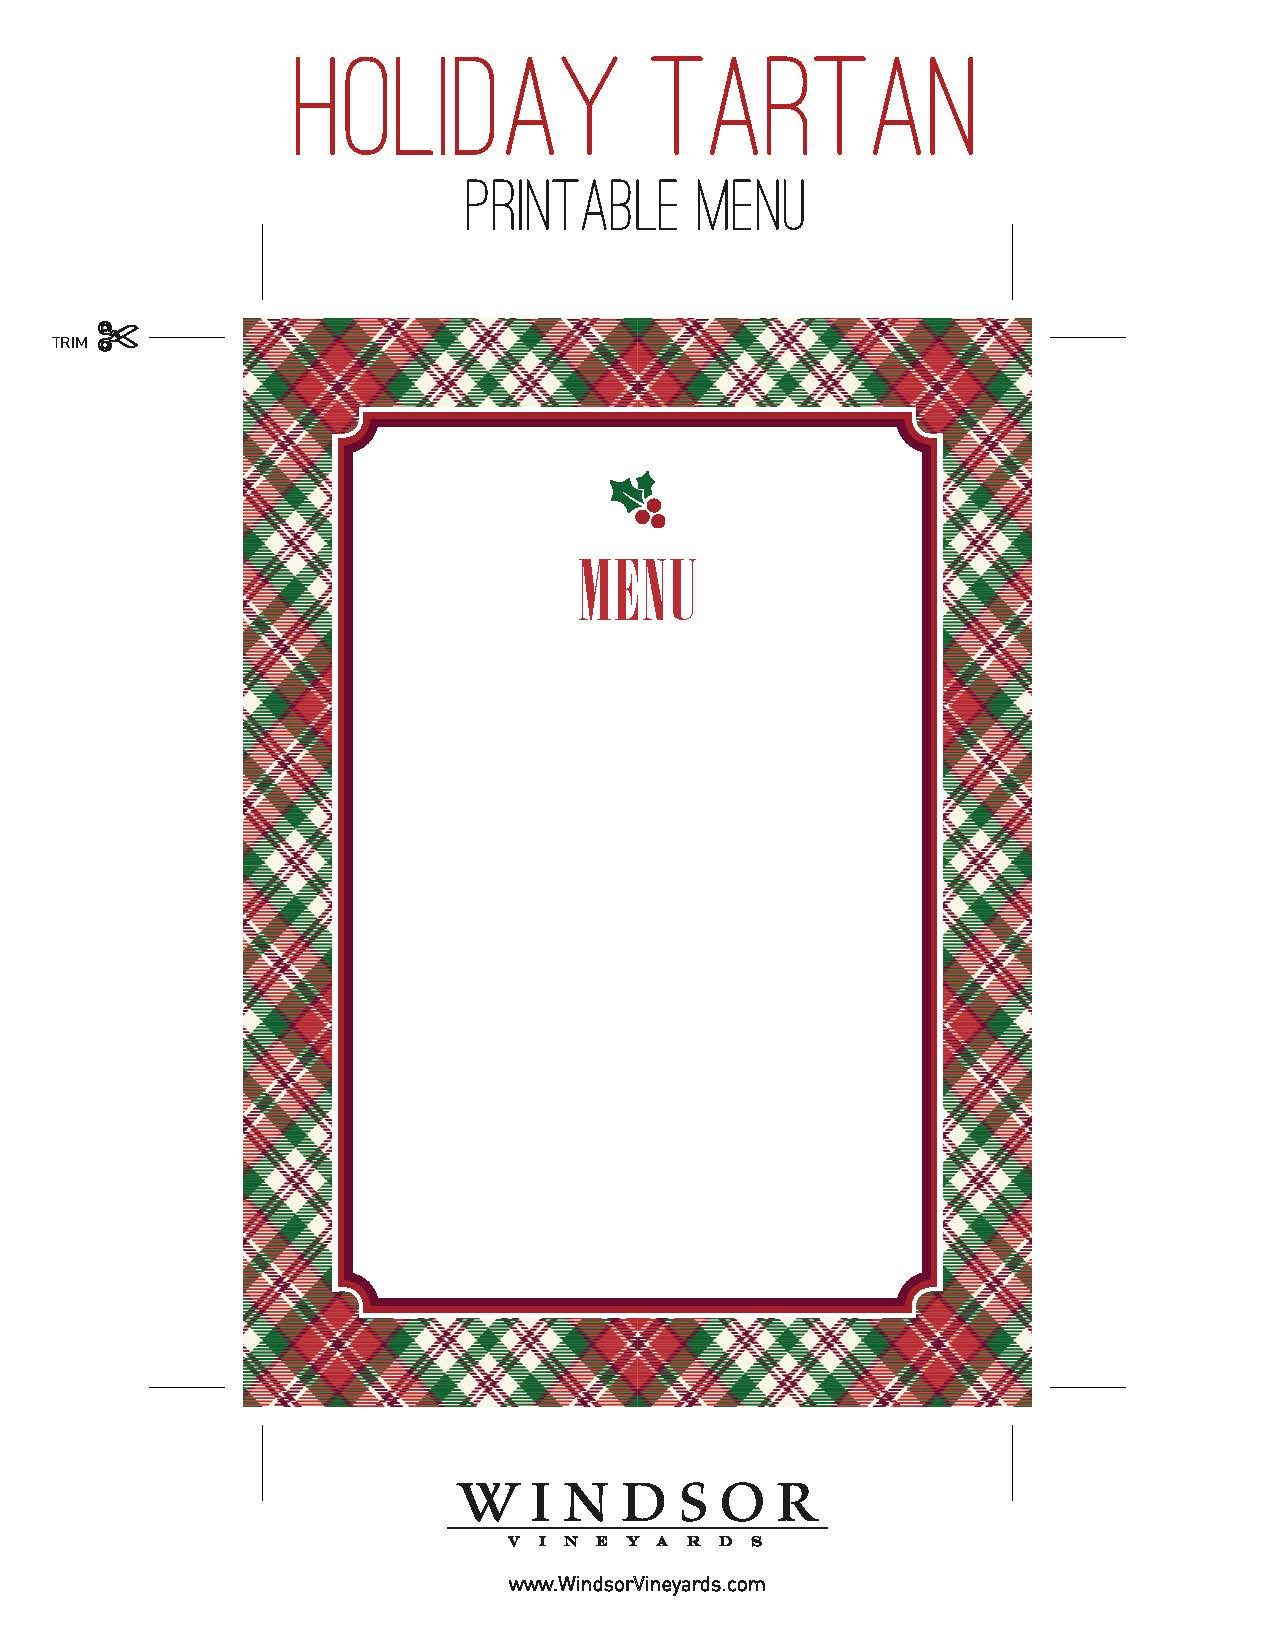 burns supper menu template - printable tartan menu template for holiday entertaining